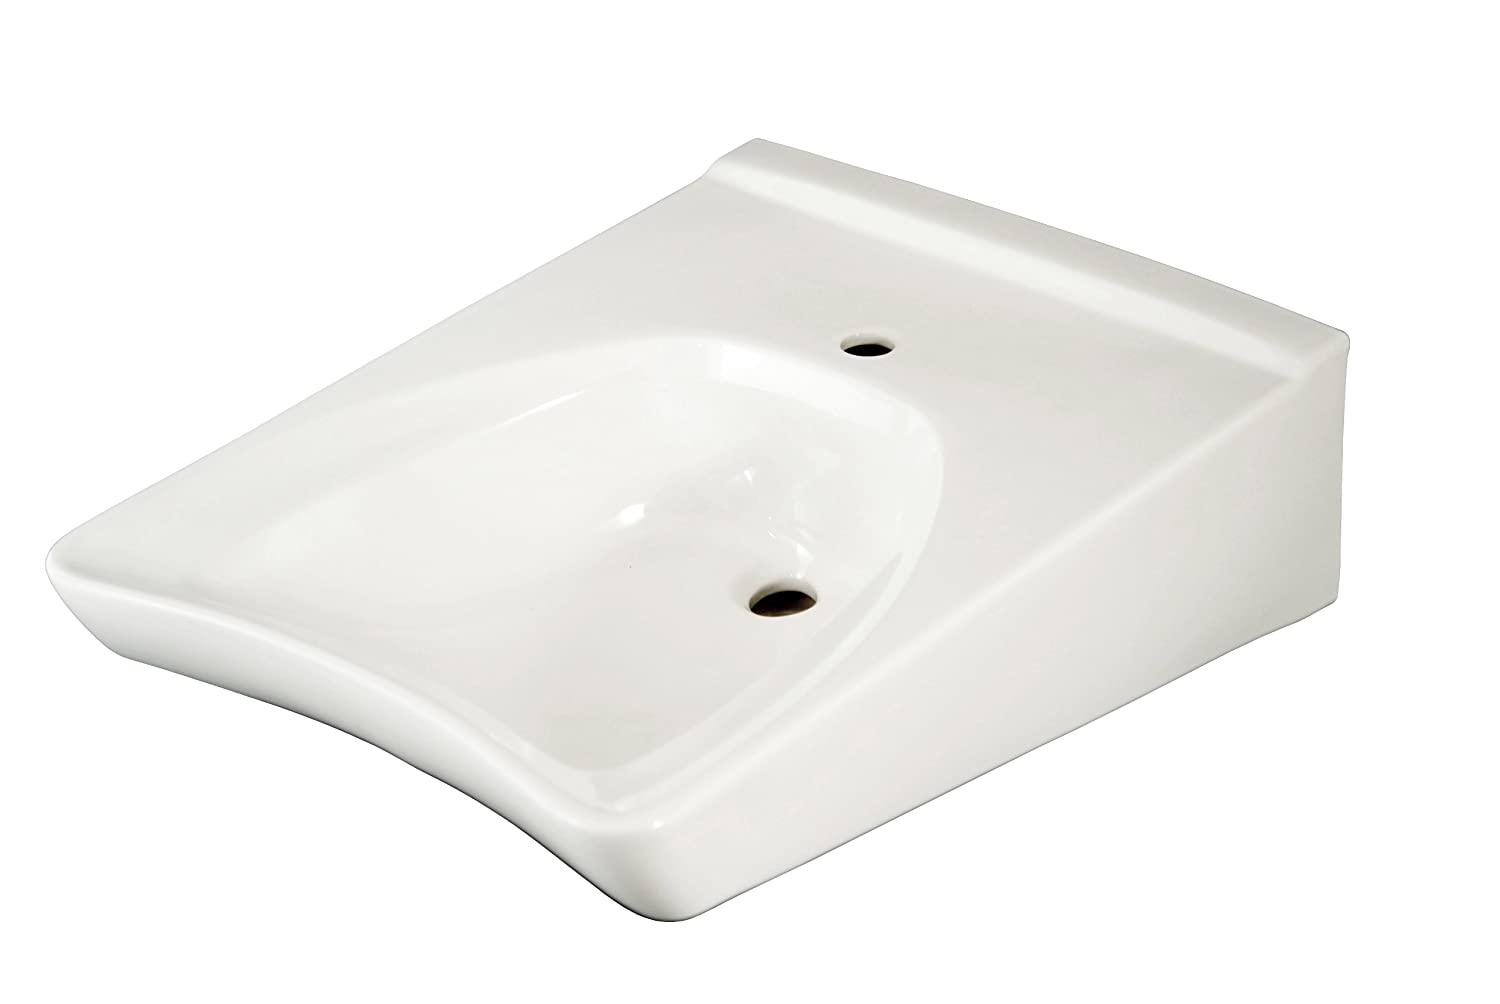 TOTO Lt Hole WallMount ADA Lavatory Cotton White Bathroom - Ada compliant commercial bathroom sinks